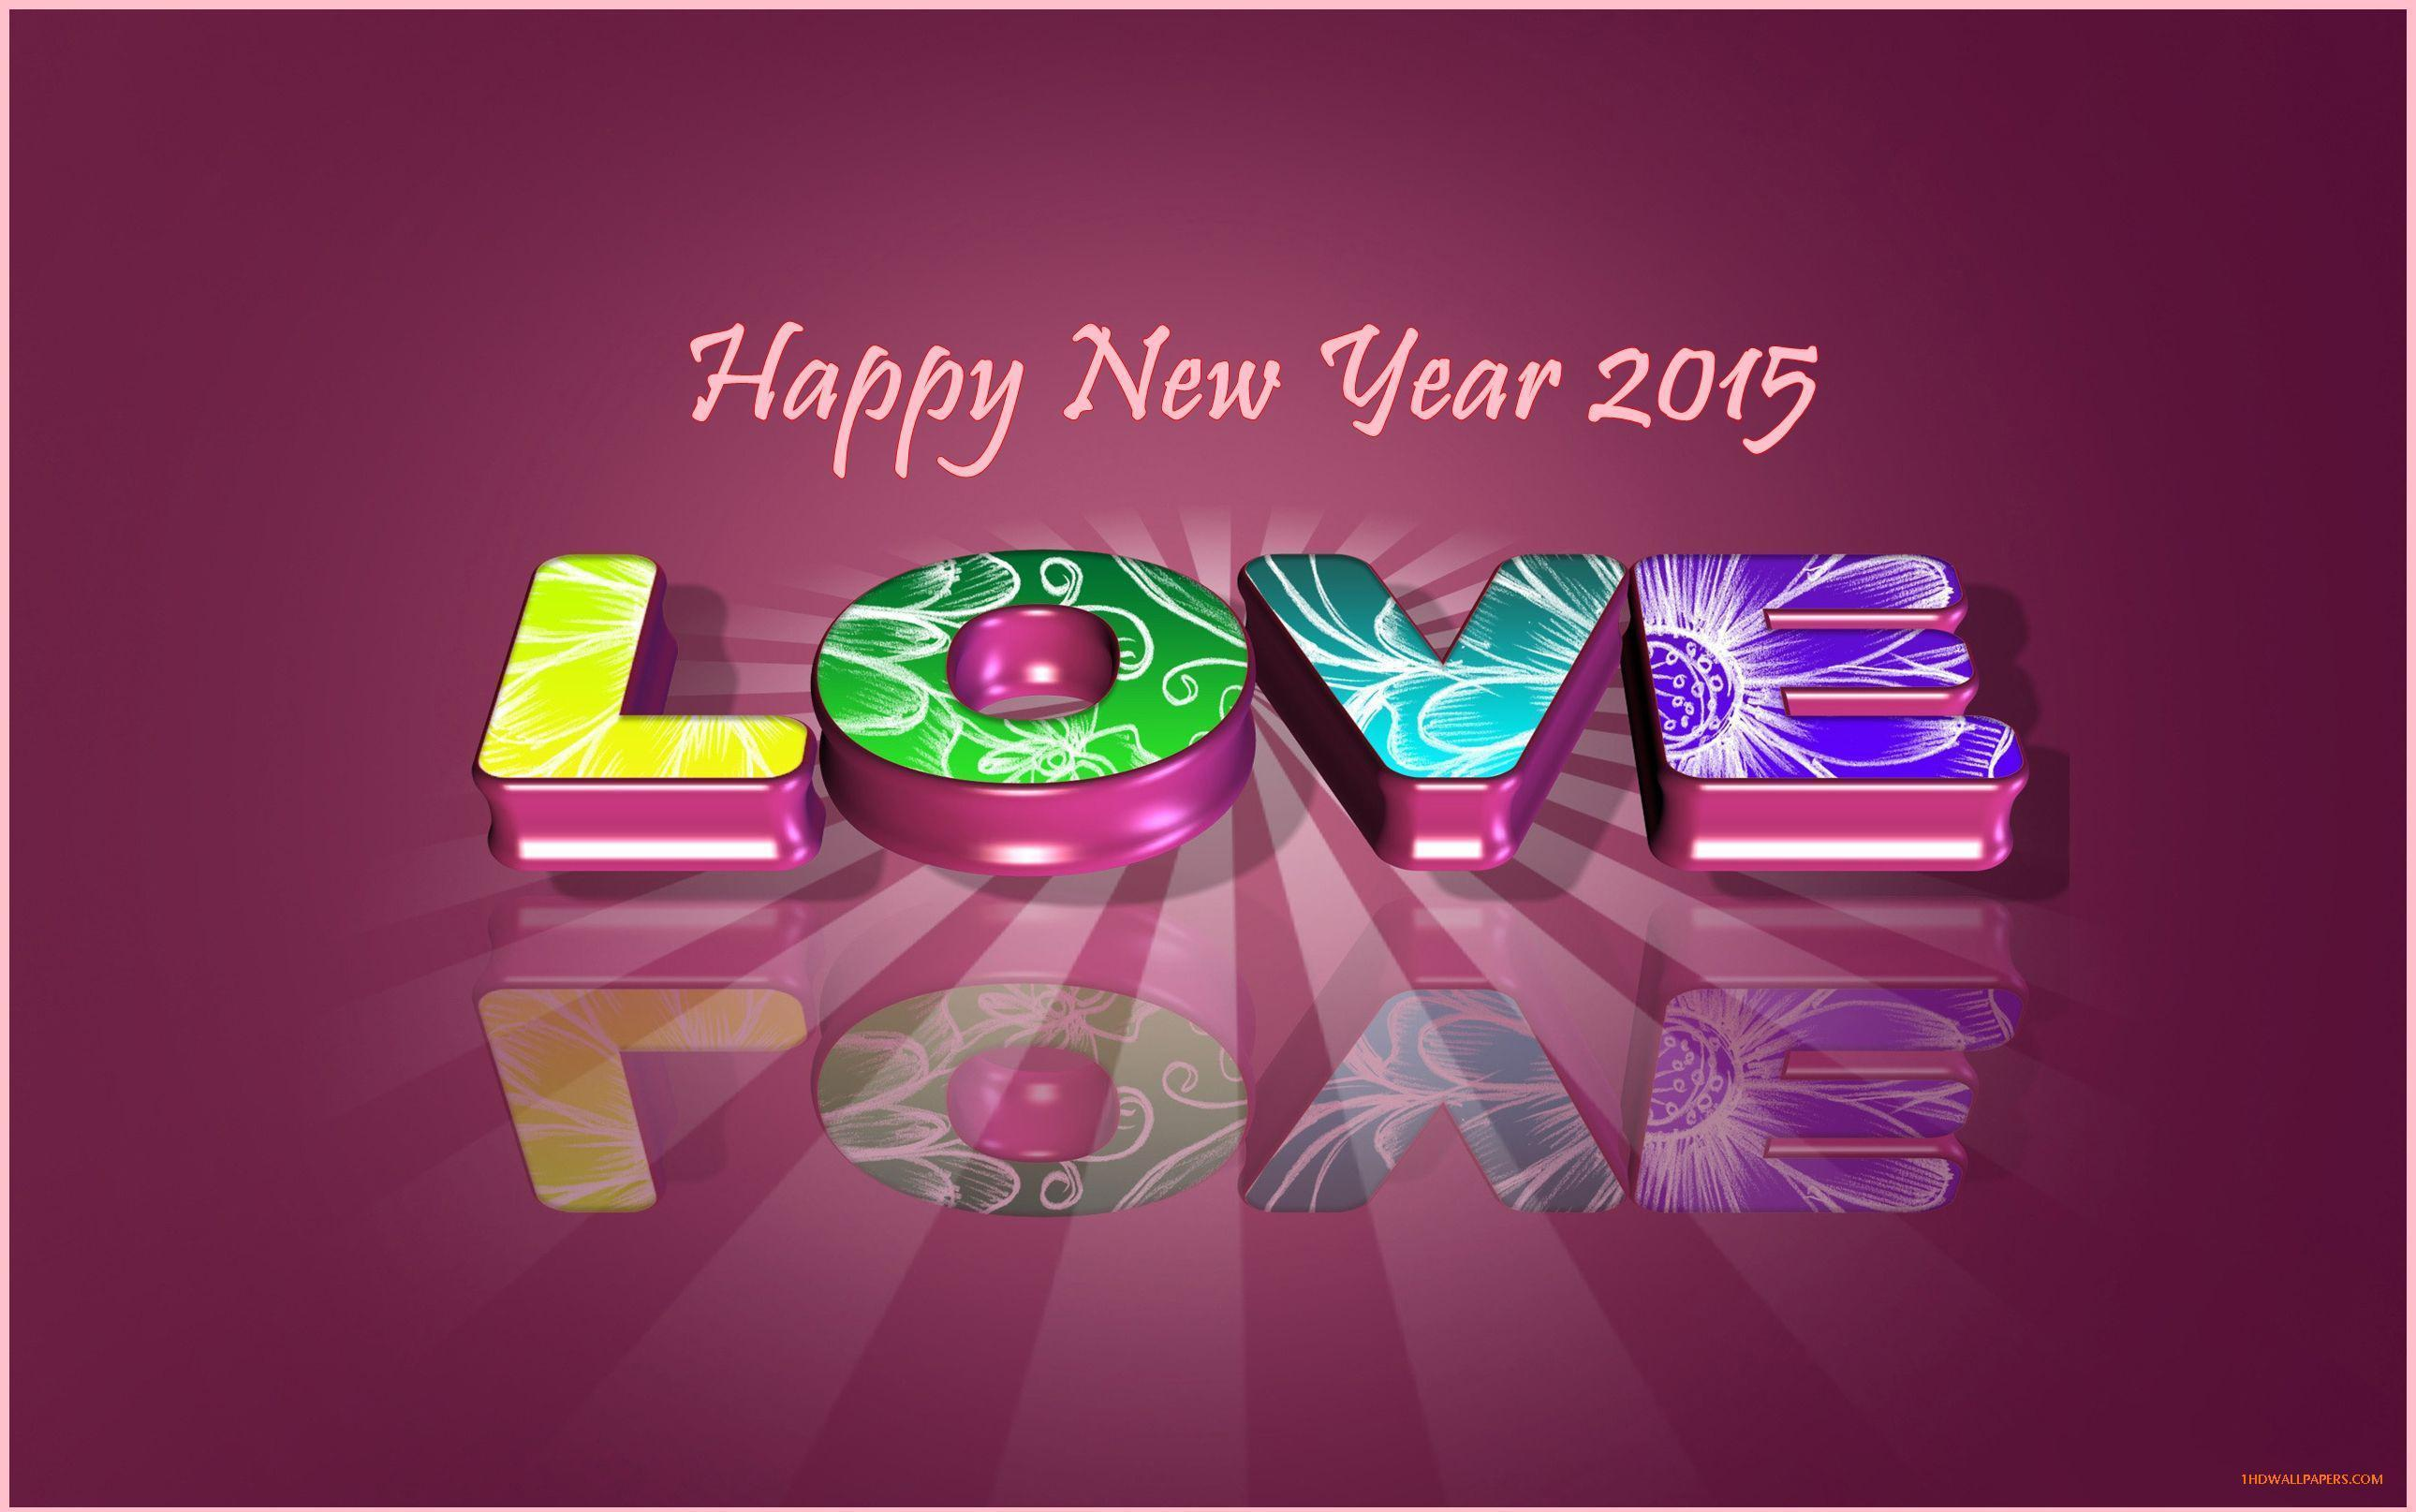 Wallpaper download new year 2015 - Hd Love Happy New Year 2015 Wallpaper Best Topics Download